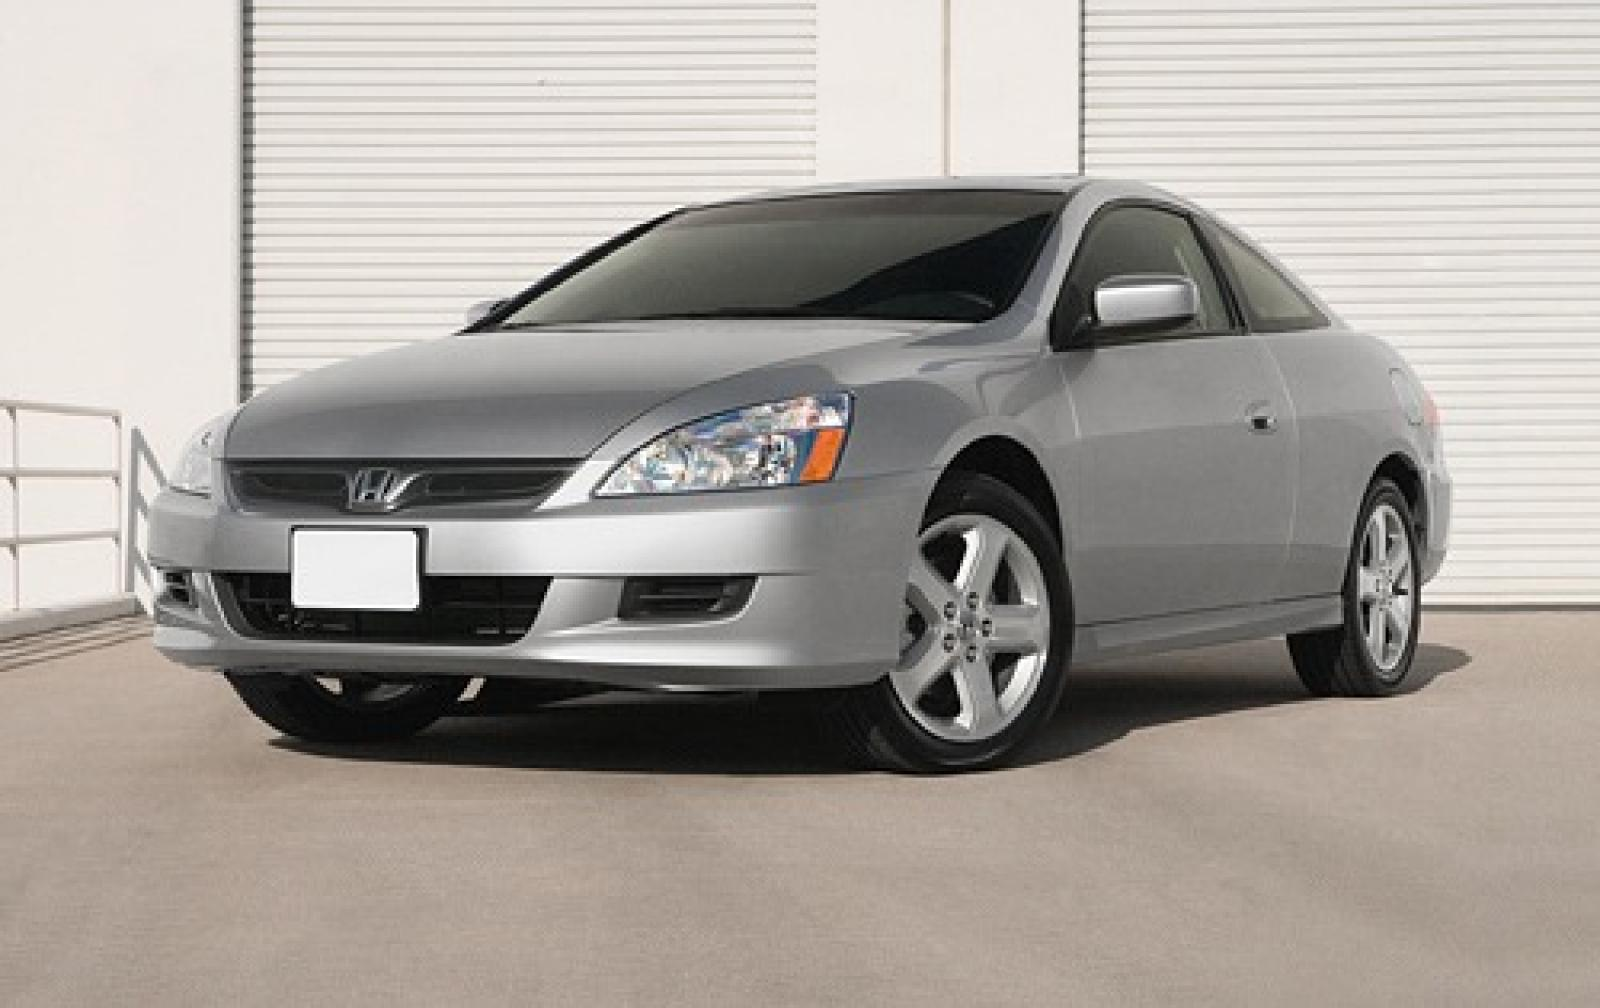 2006 honda accord information and photos zombiedrive for Honda accord ex coupe